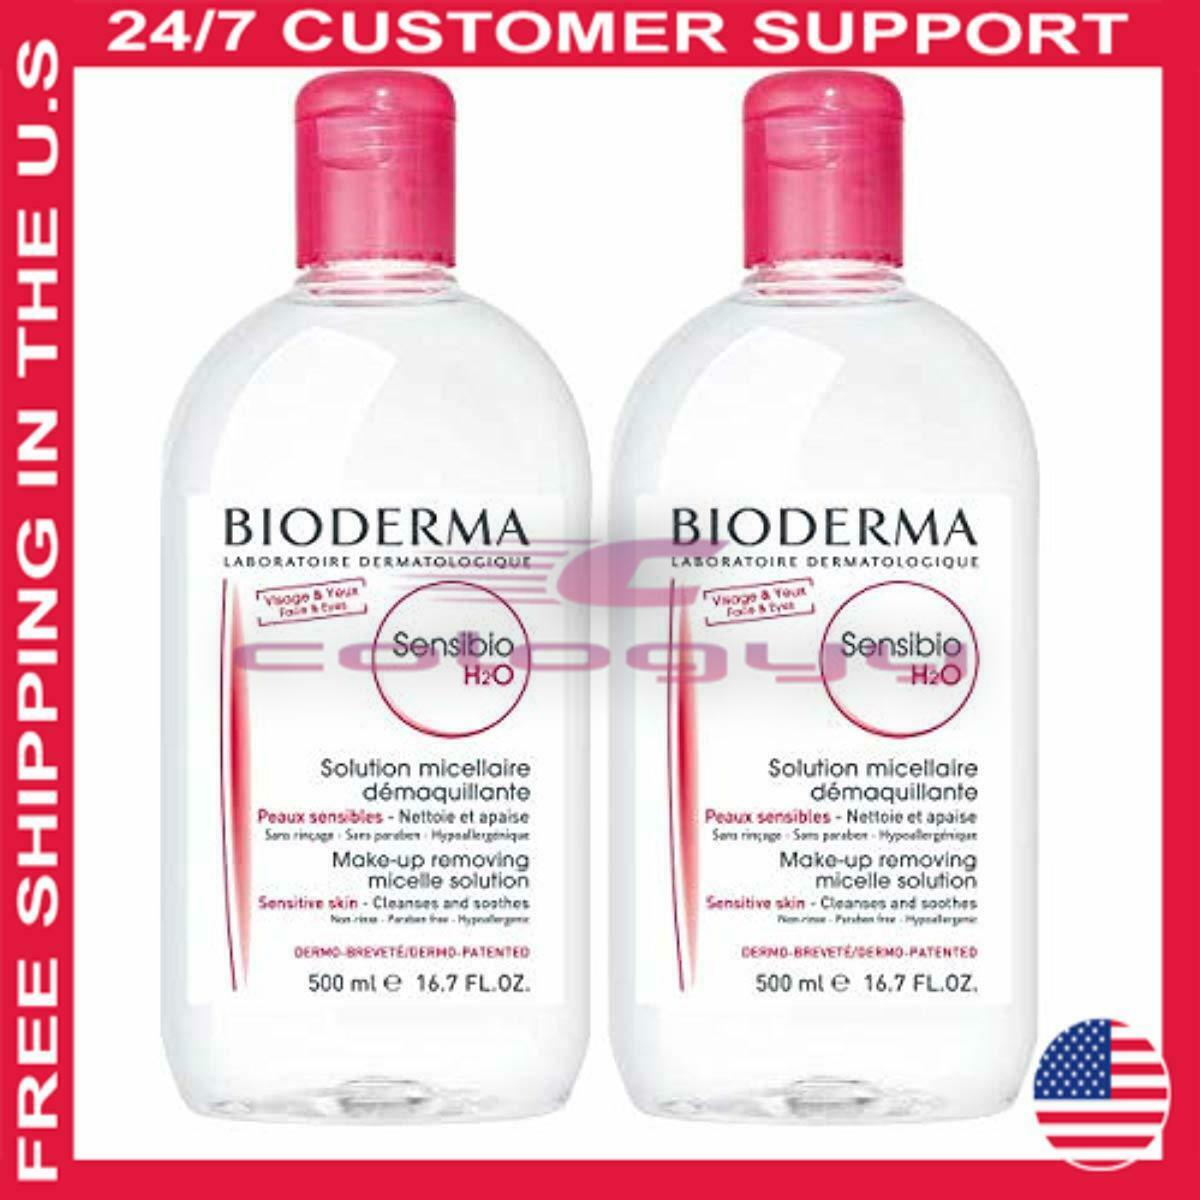 Bioderma Sensibio H2O Soothing Micellar Cleansing Water and